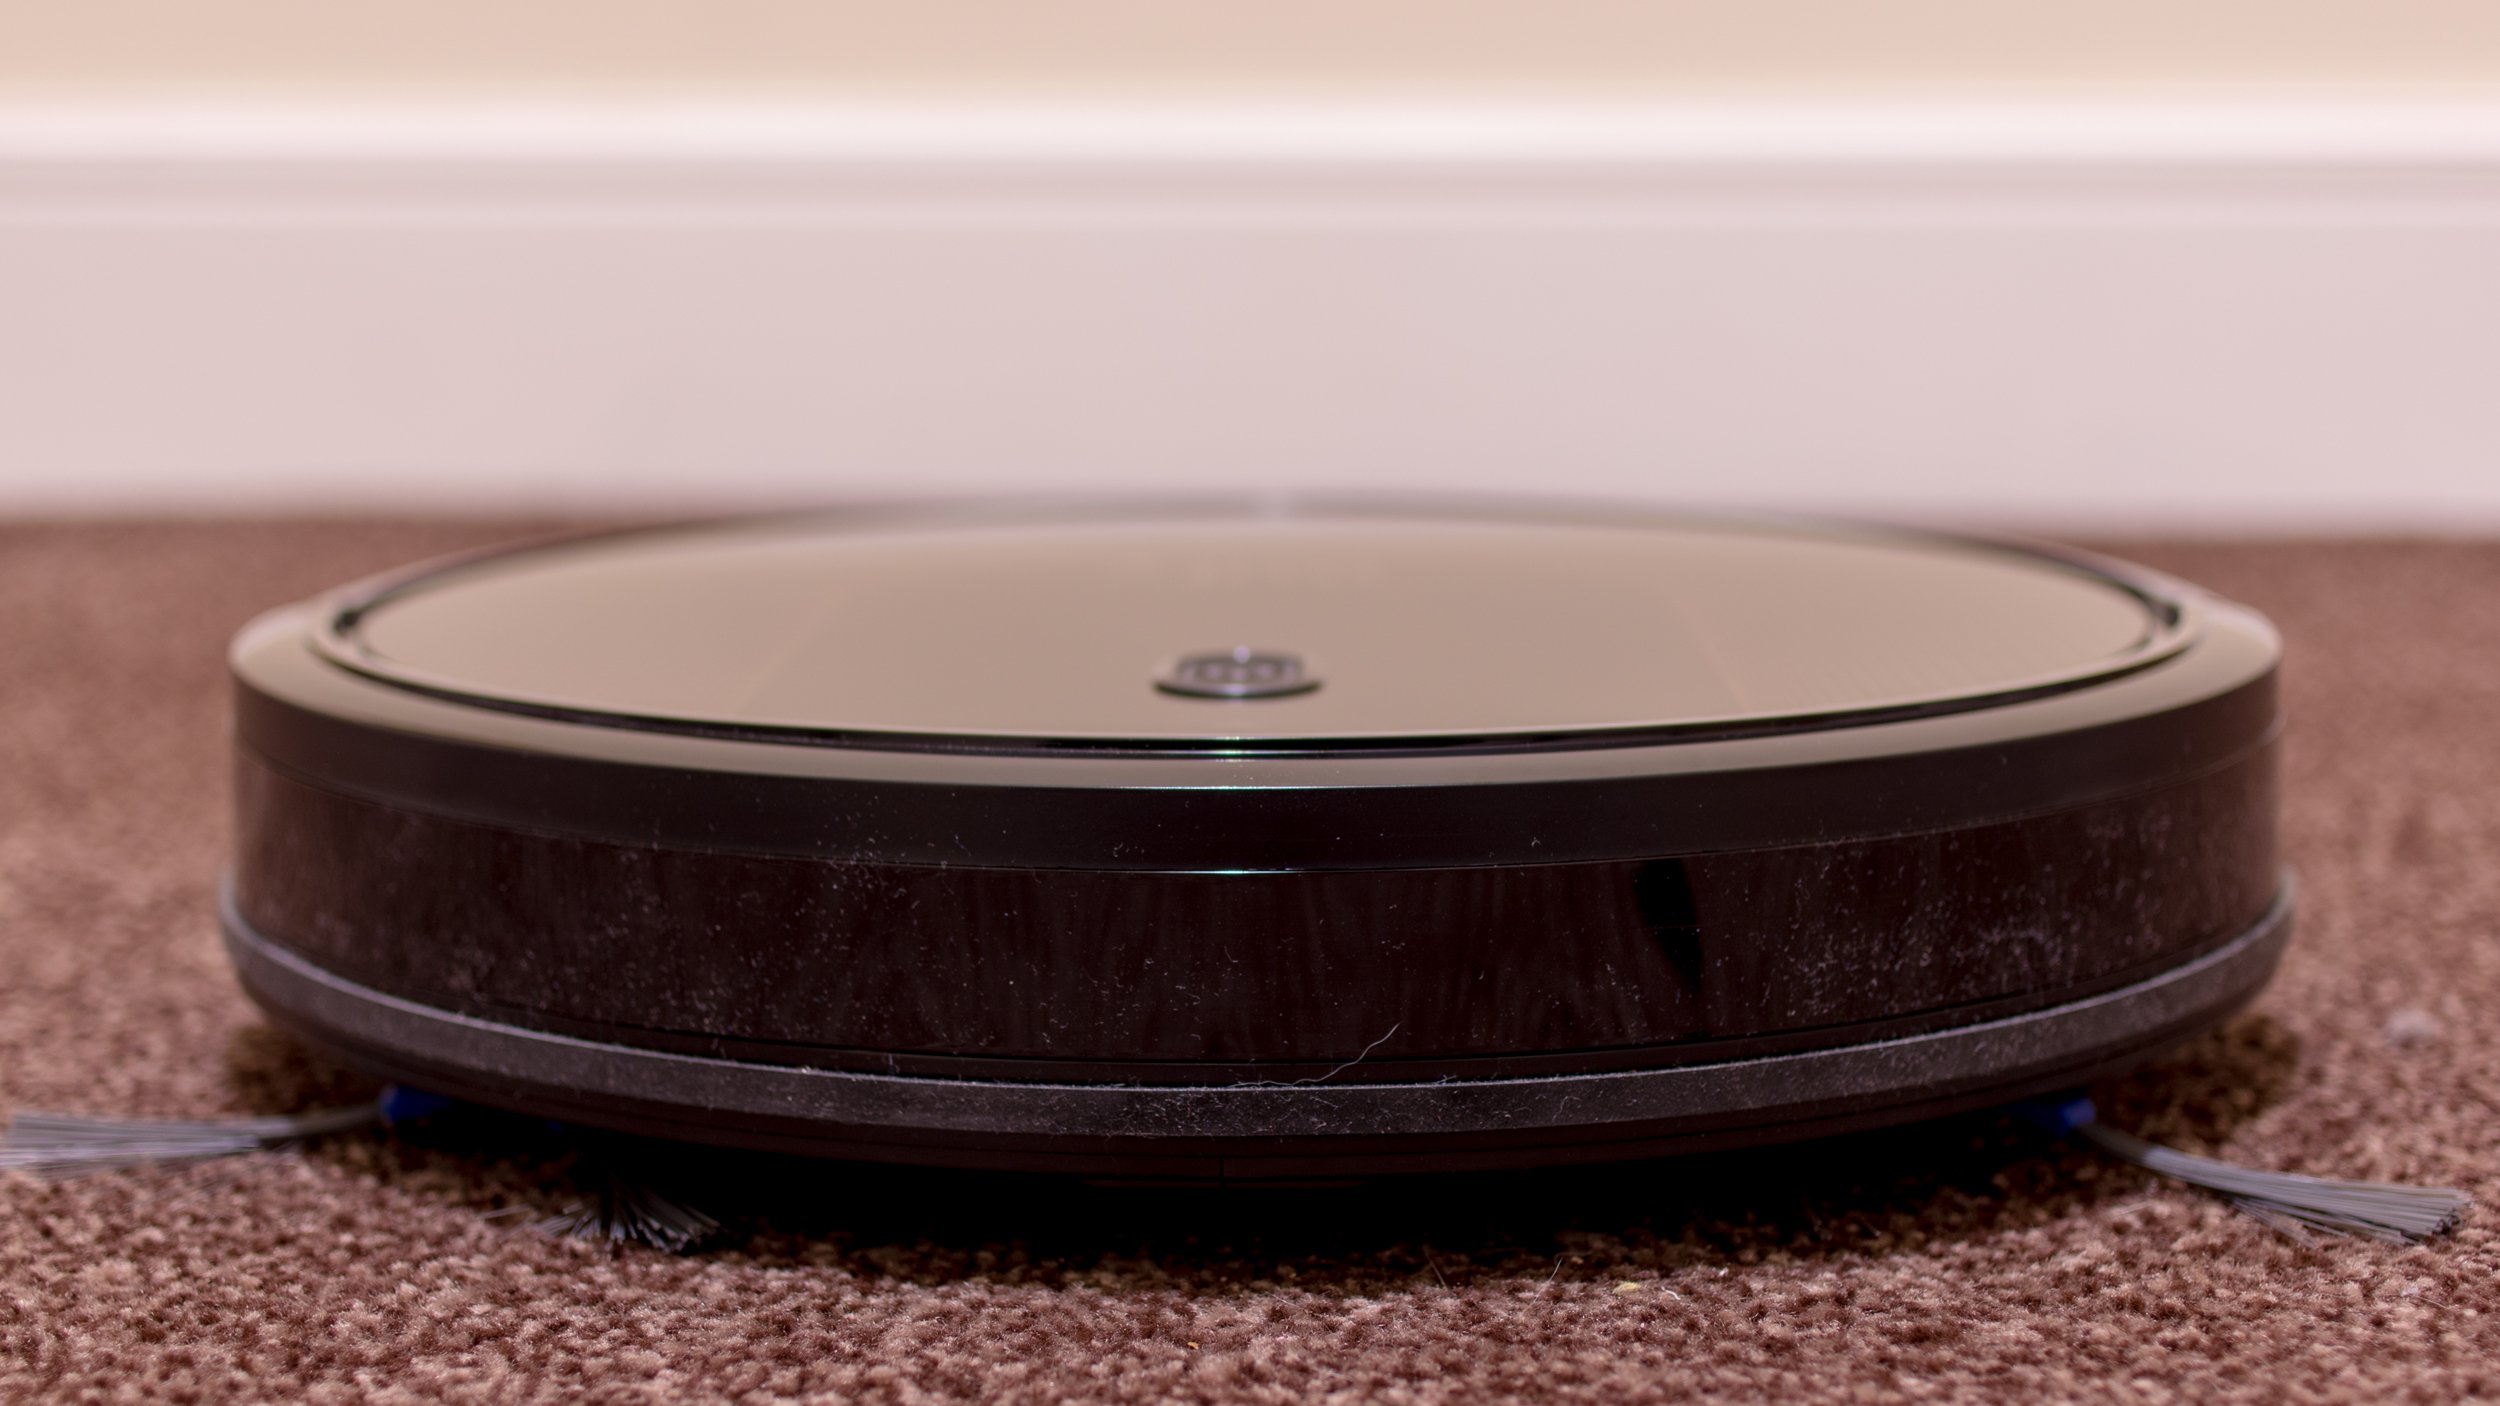 Eufy Robovac 30c Review A Powerful Vacuum At A Tempting